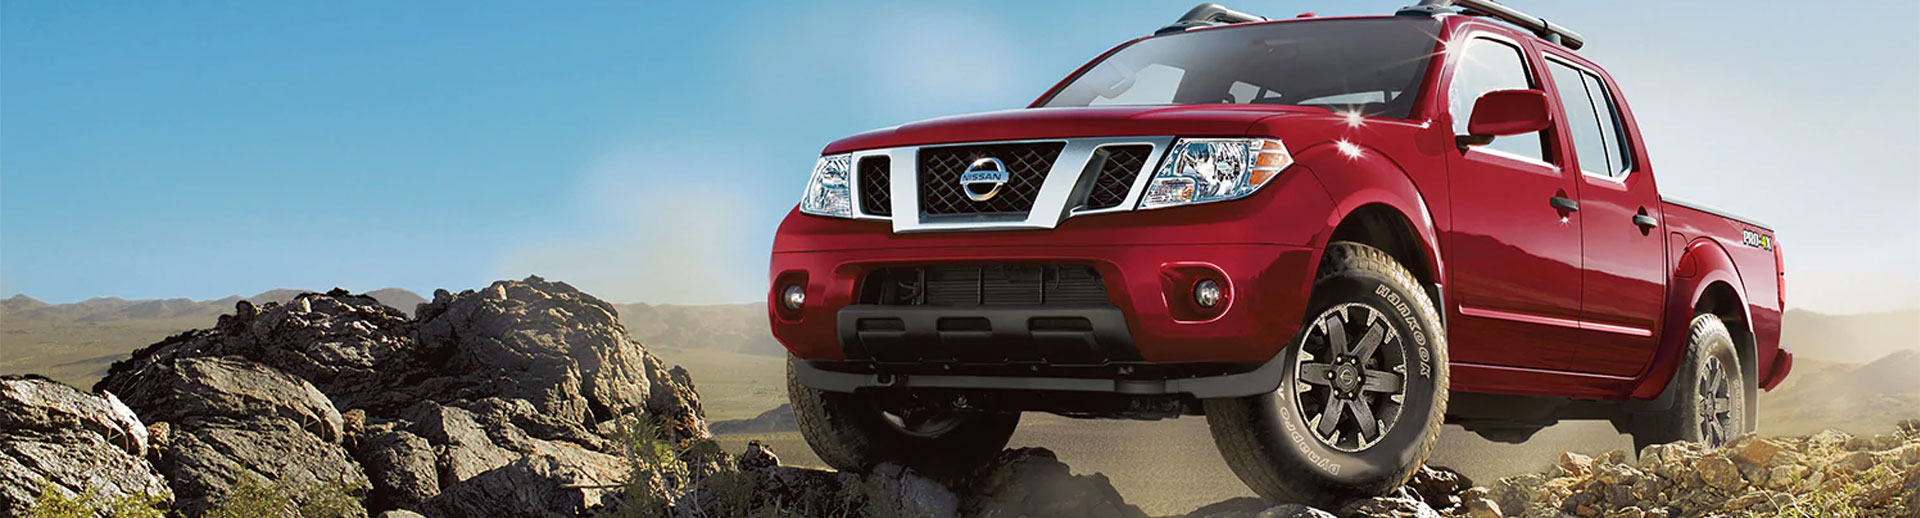 2020 Nissan Frontier Lifestyle Photo